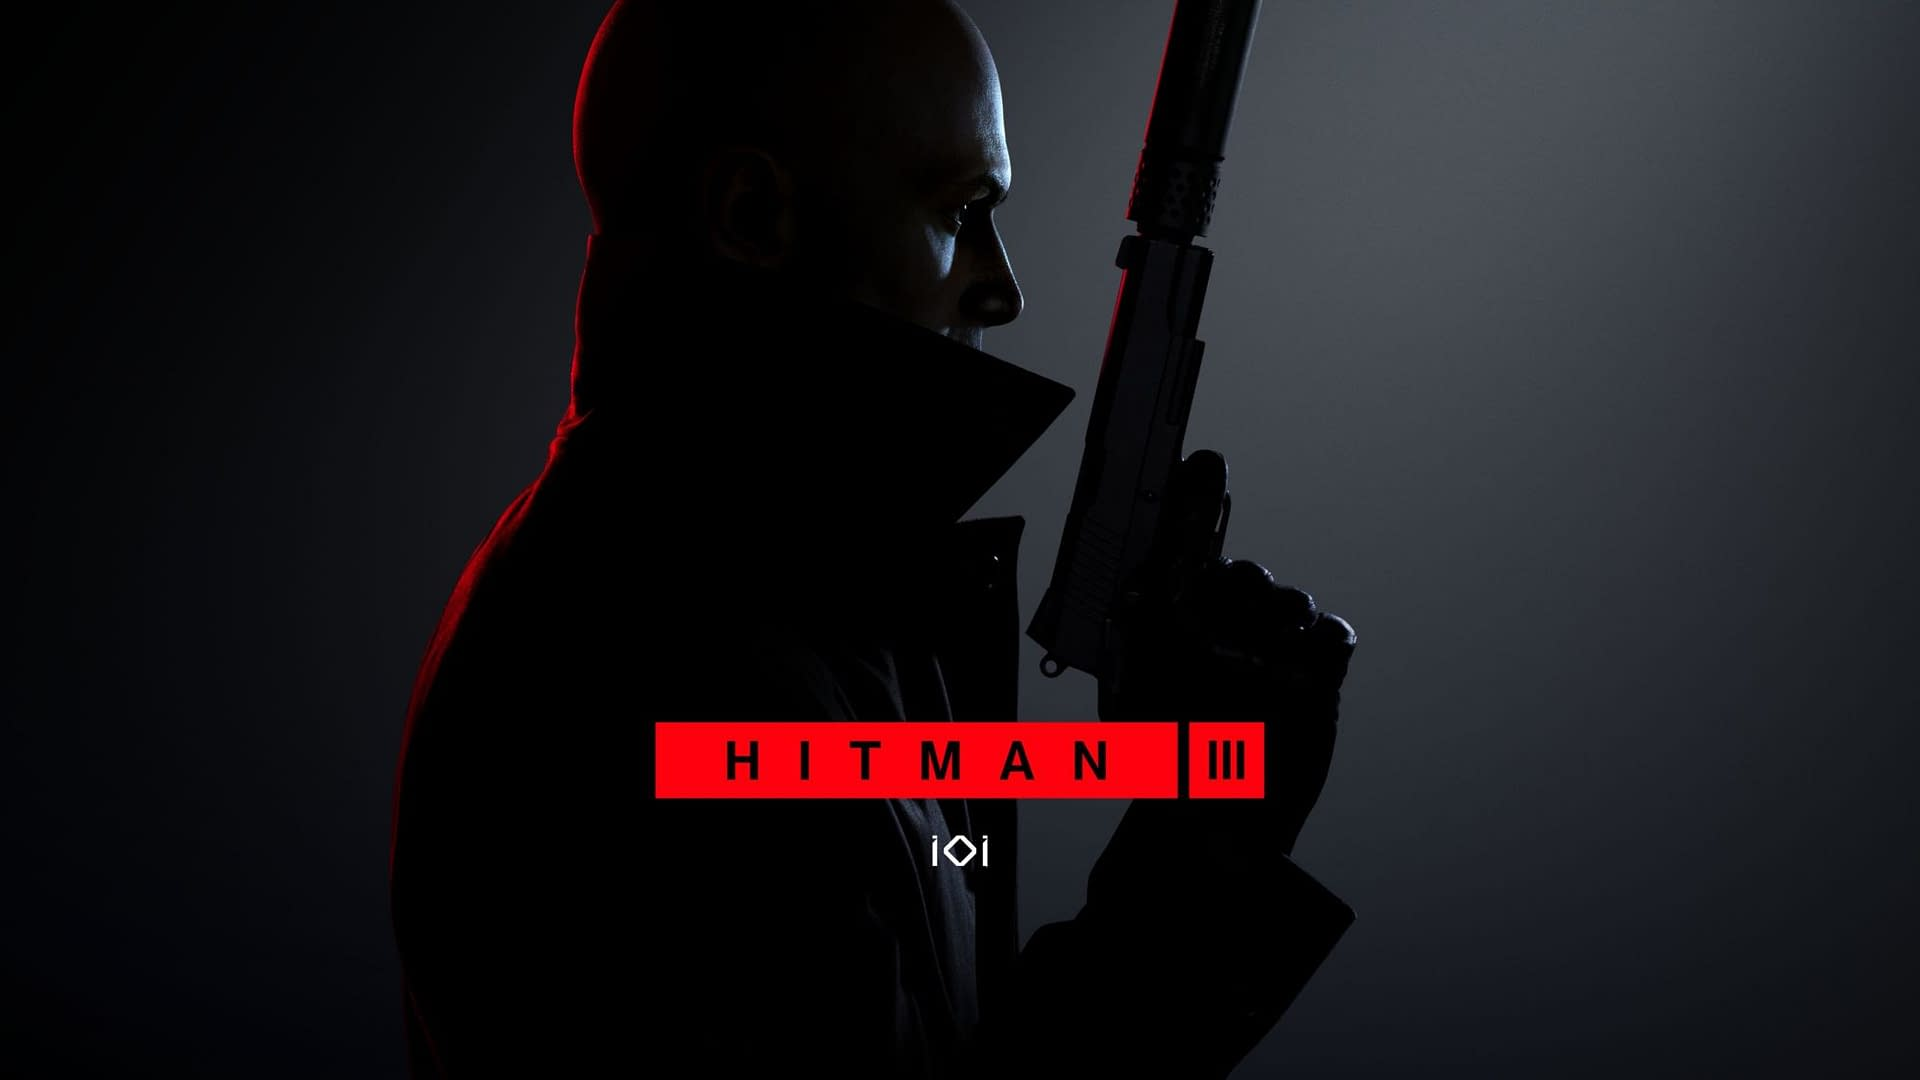 Hitman 3 Developers Reveal Upcoming Game Modes